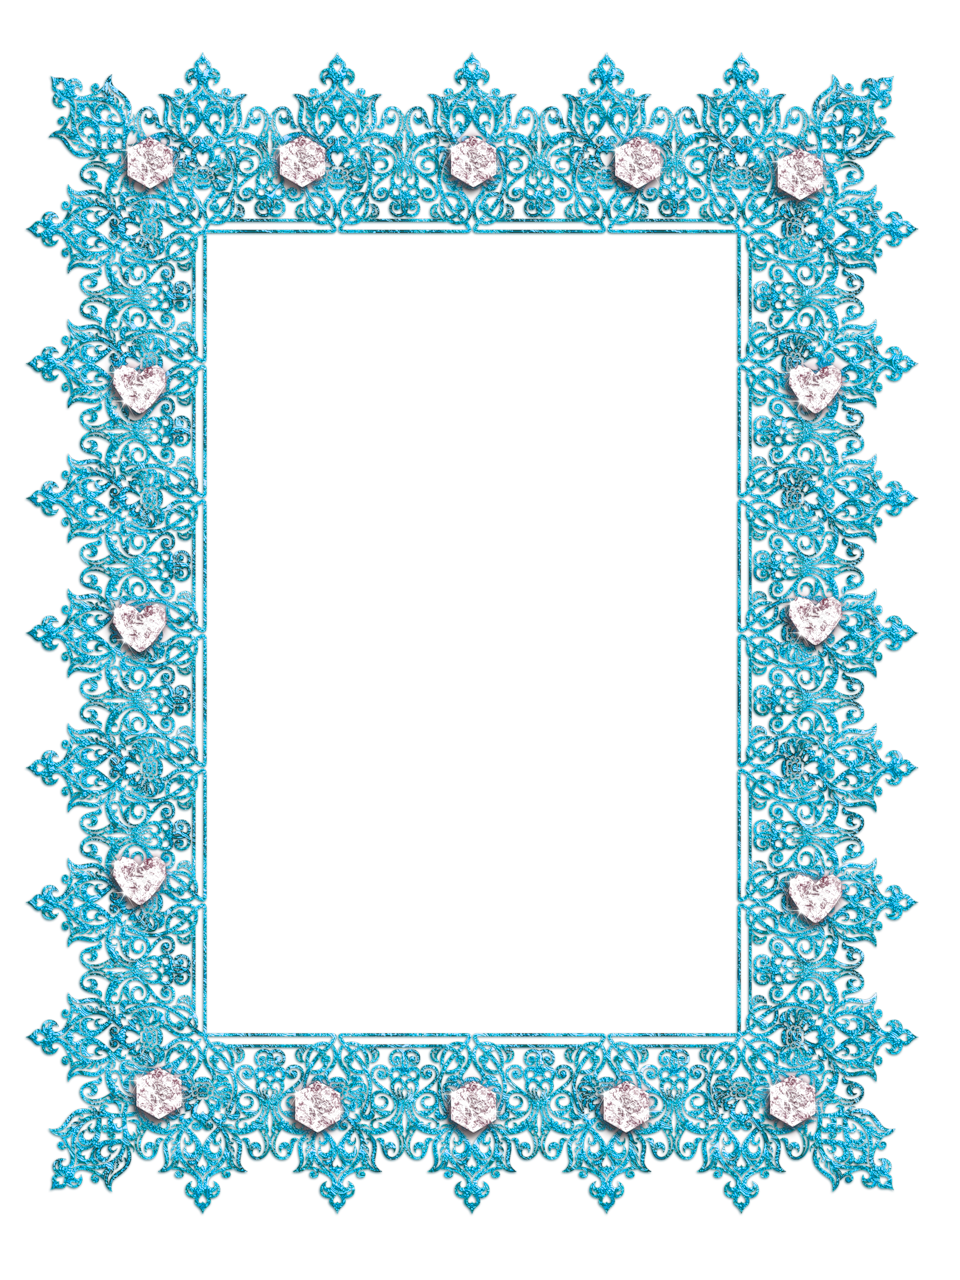 Free transparent apple jackpot clipart vector royalty free Blue Transparent Frame with Diamonds | Marcos para todo | Pinterest ... vector royalty free